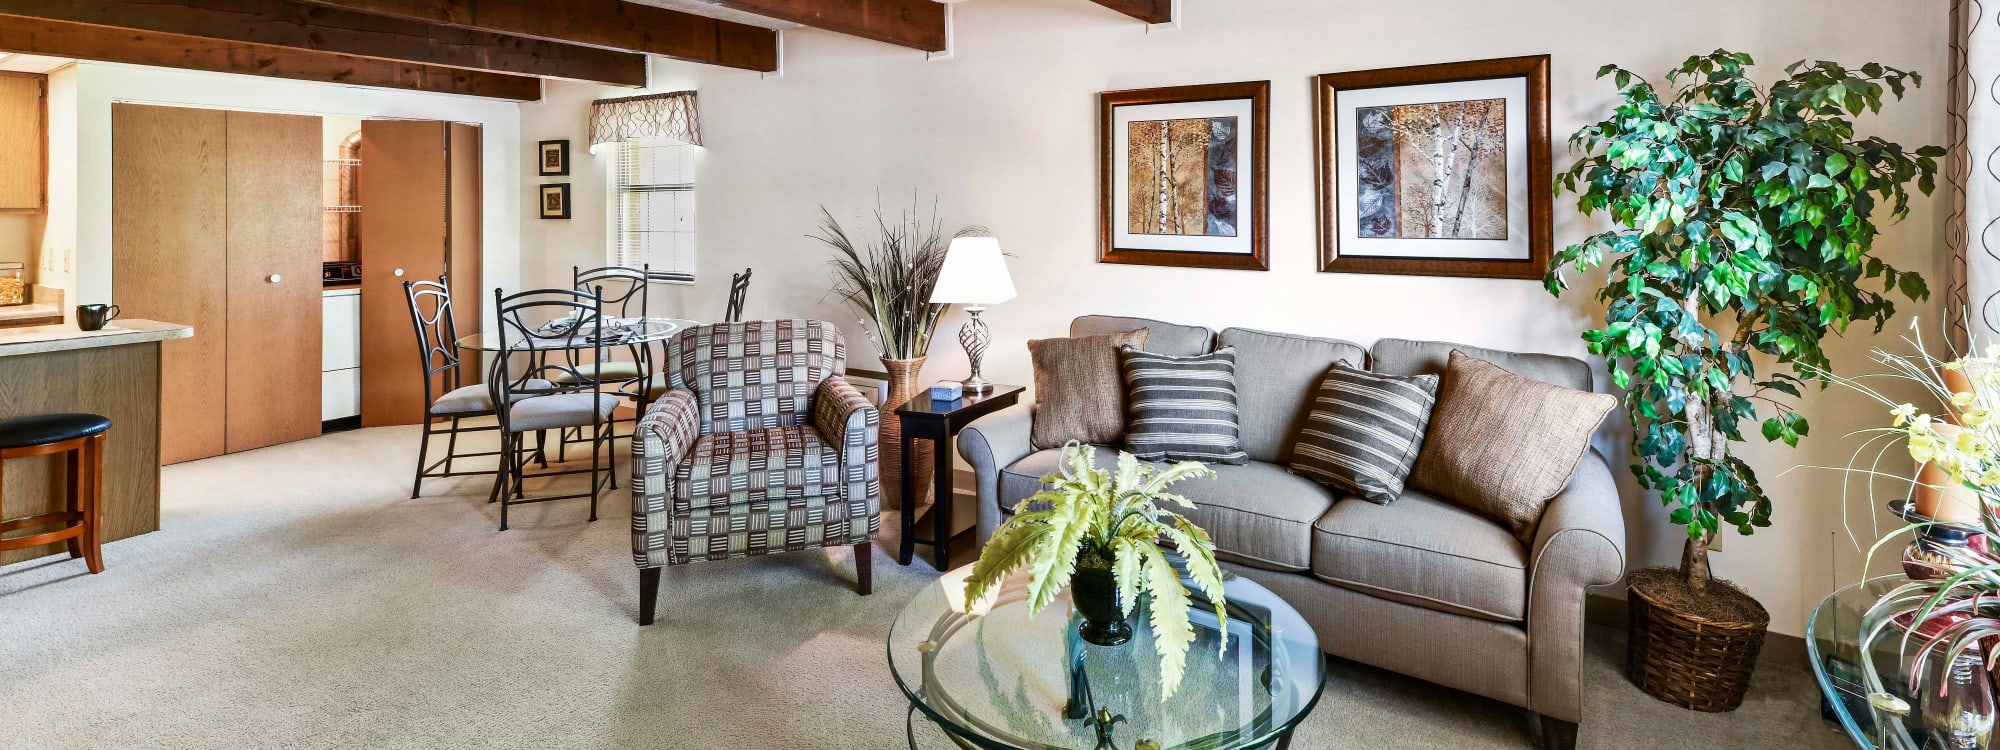 Amenities at Brittany Bay Apartments and Townhomes in Groveport, Ohio